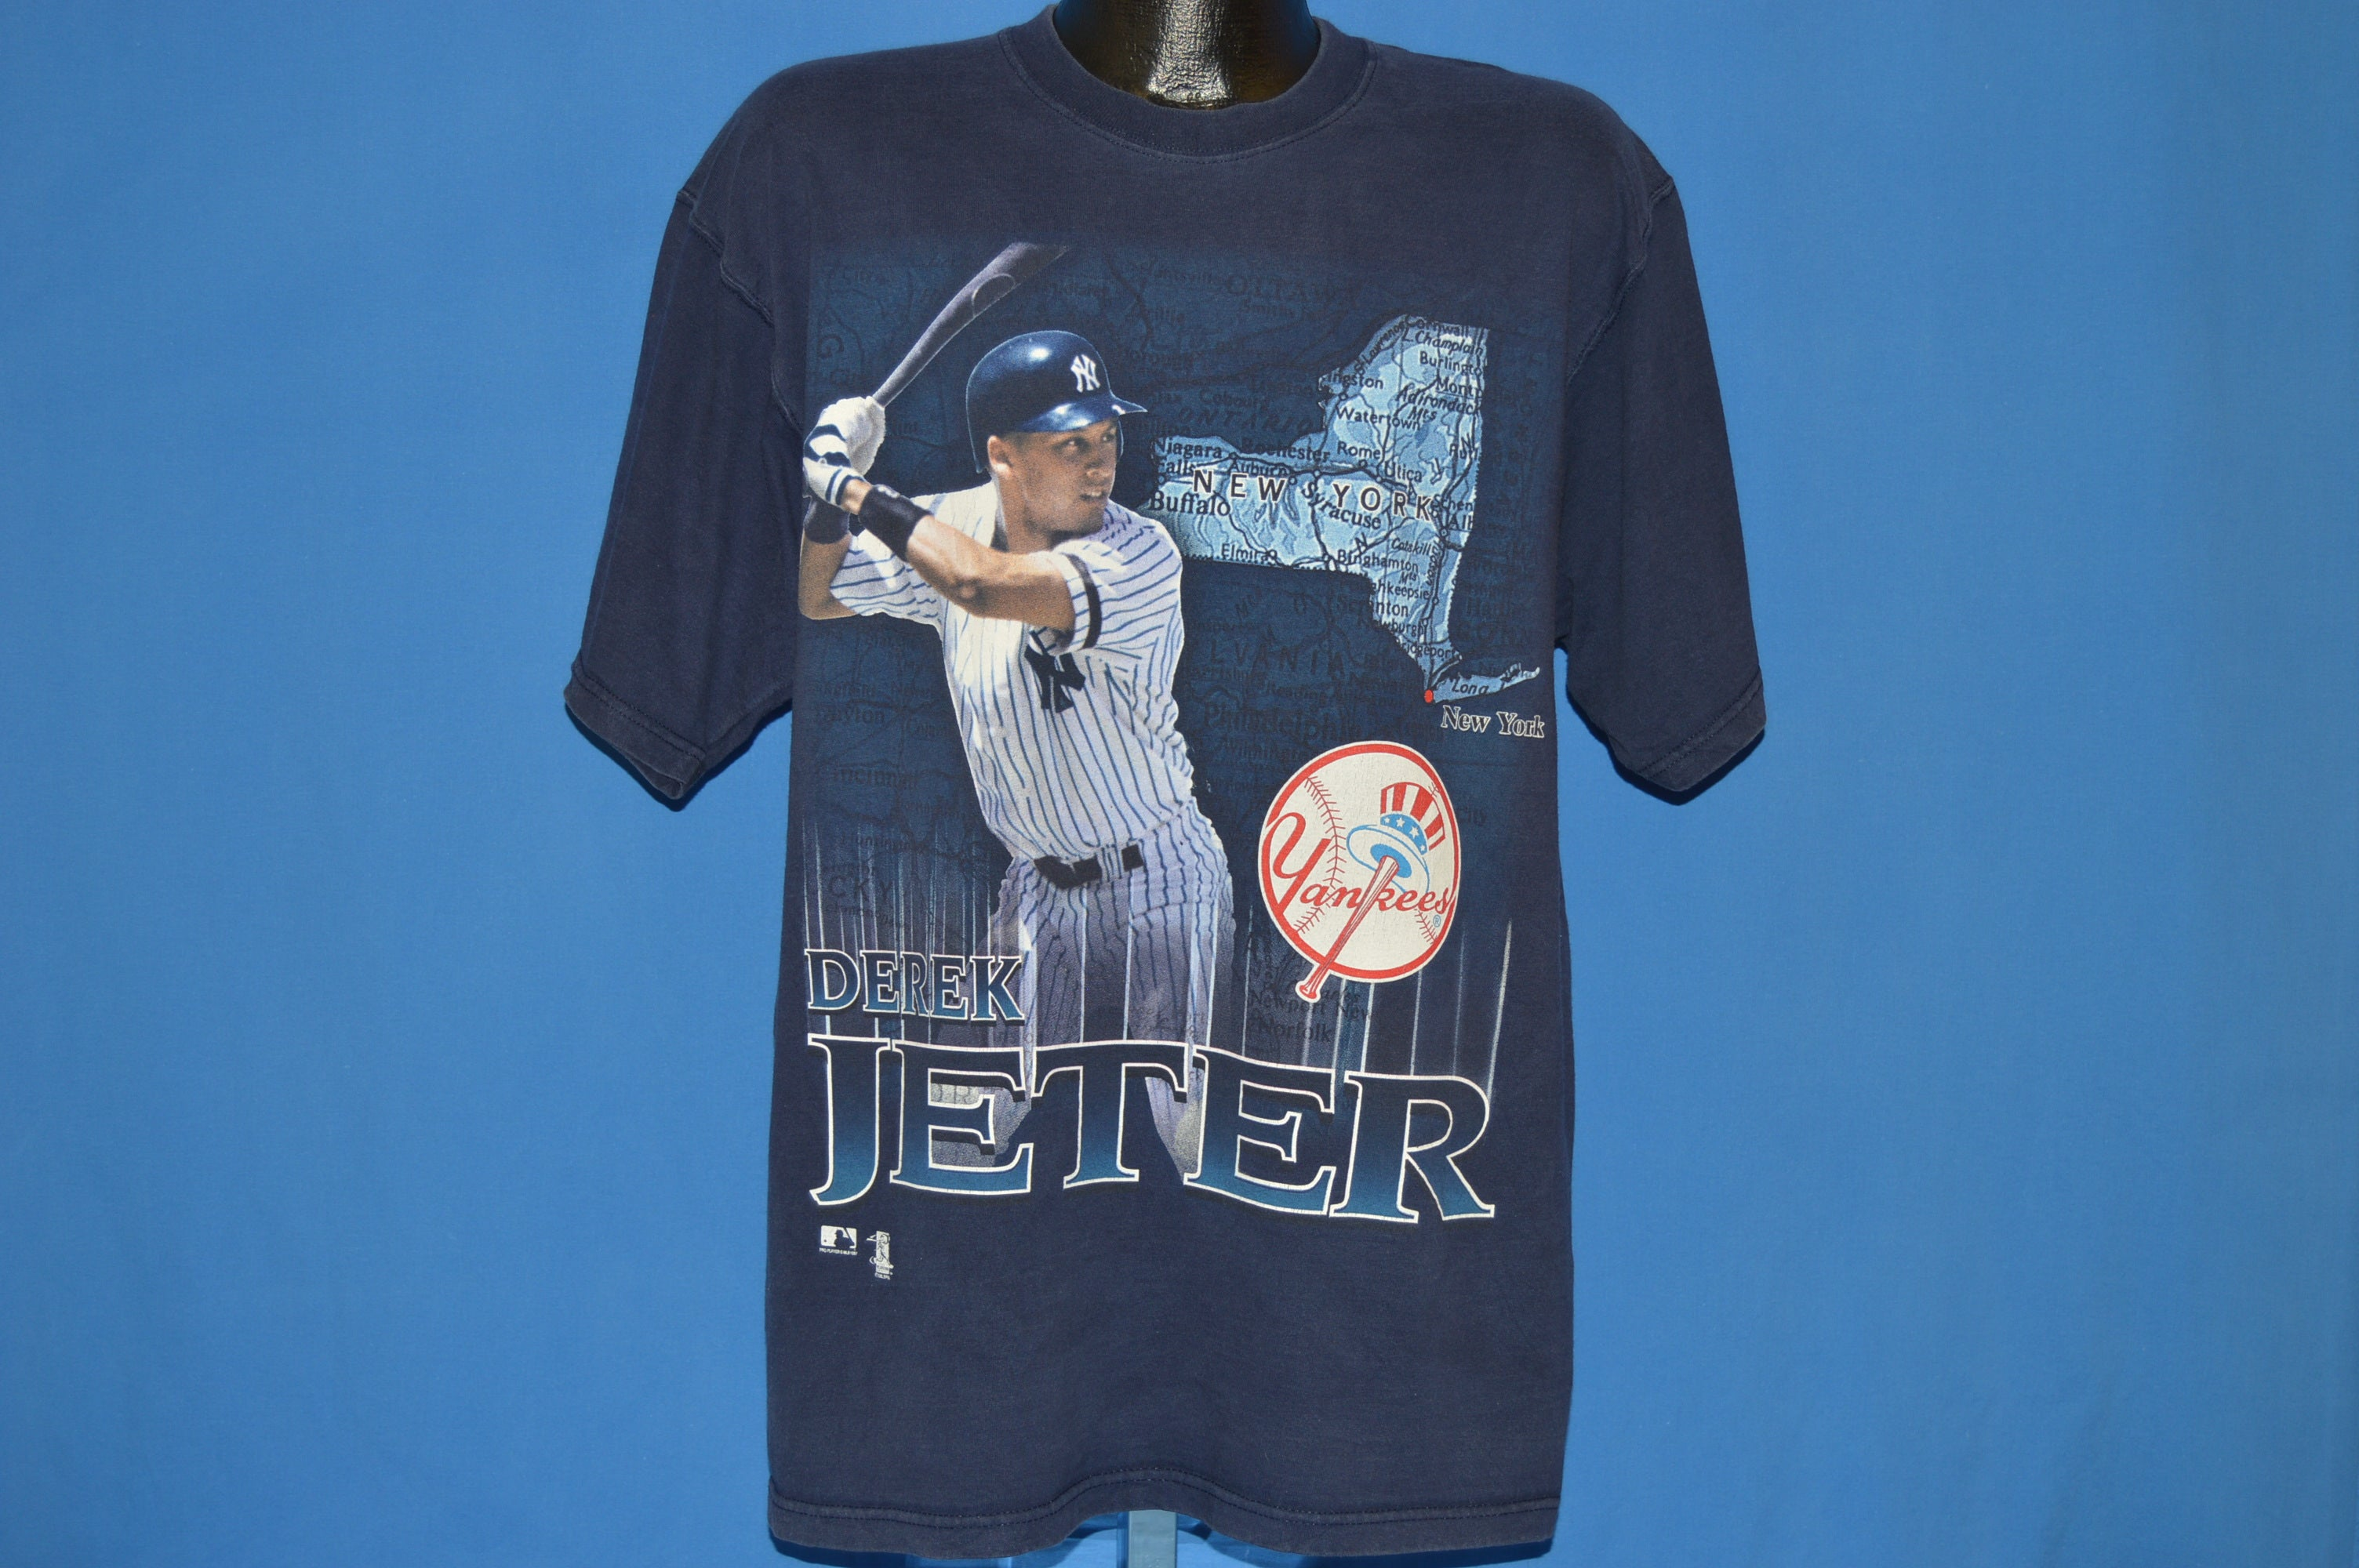 90s Derek Jeter New York Yankees t-shirt Large - The Captains Vintage b87ae455d8d